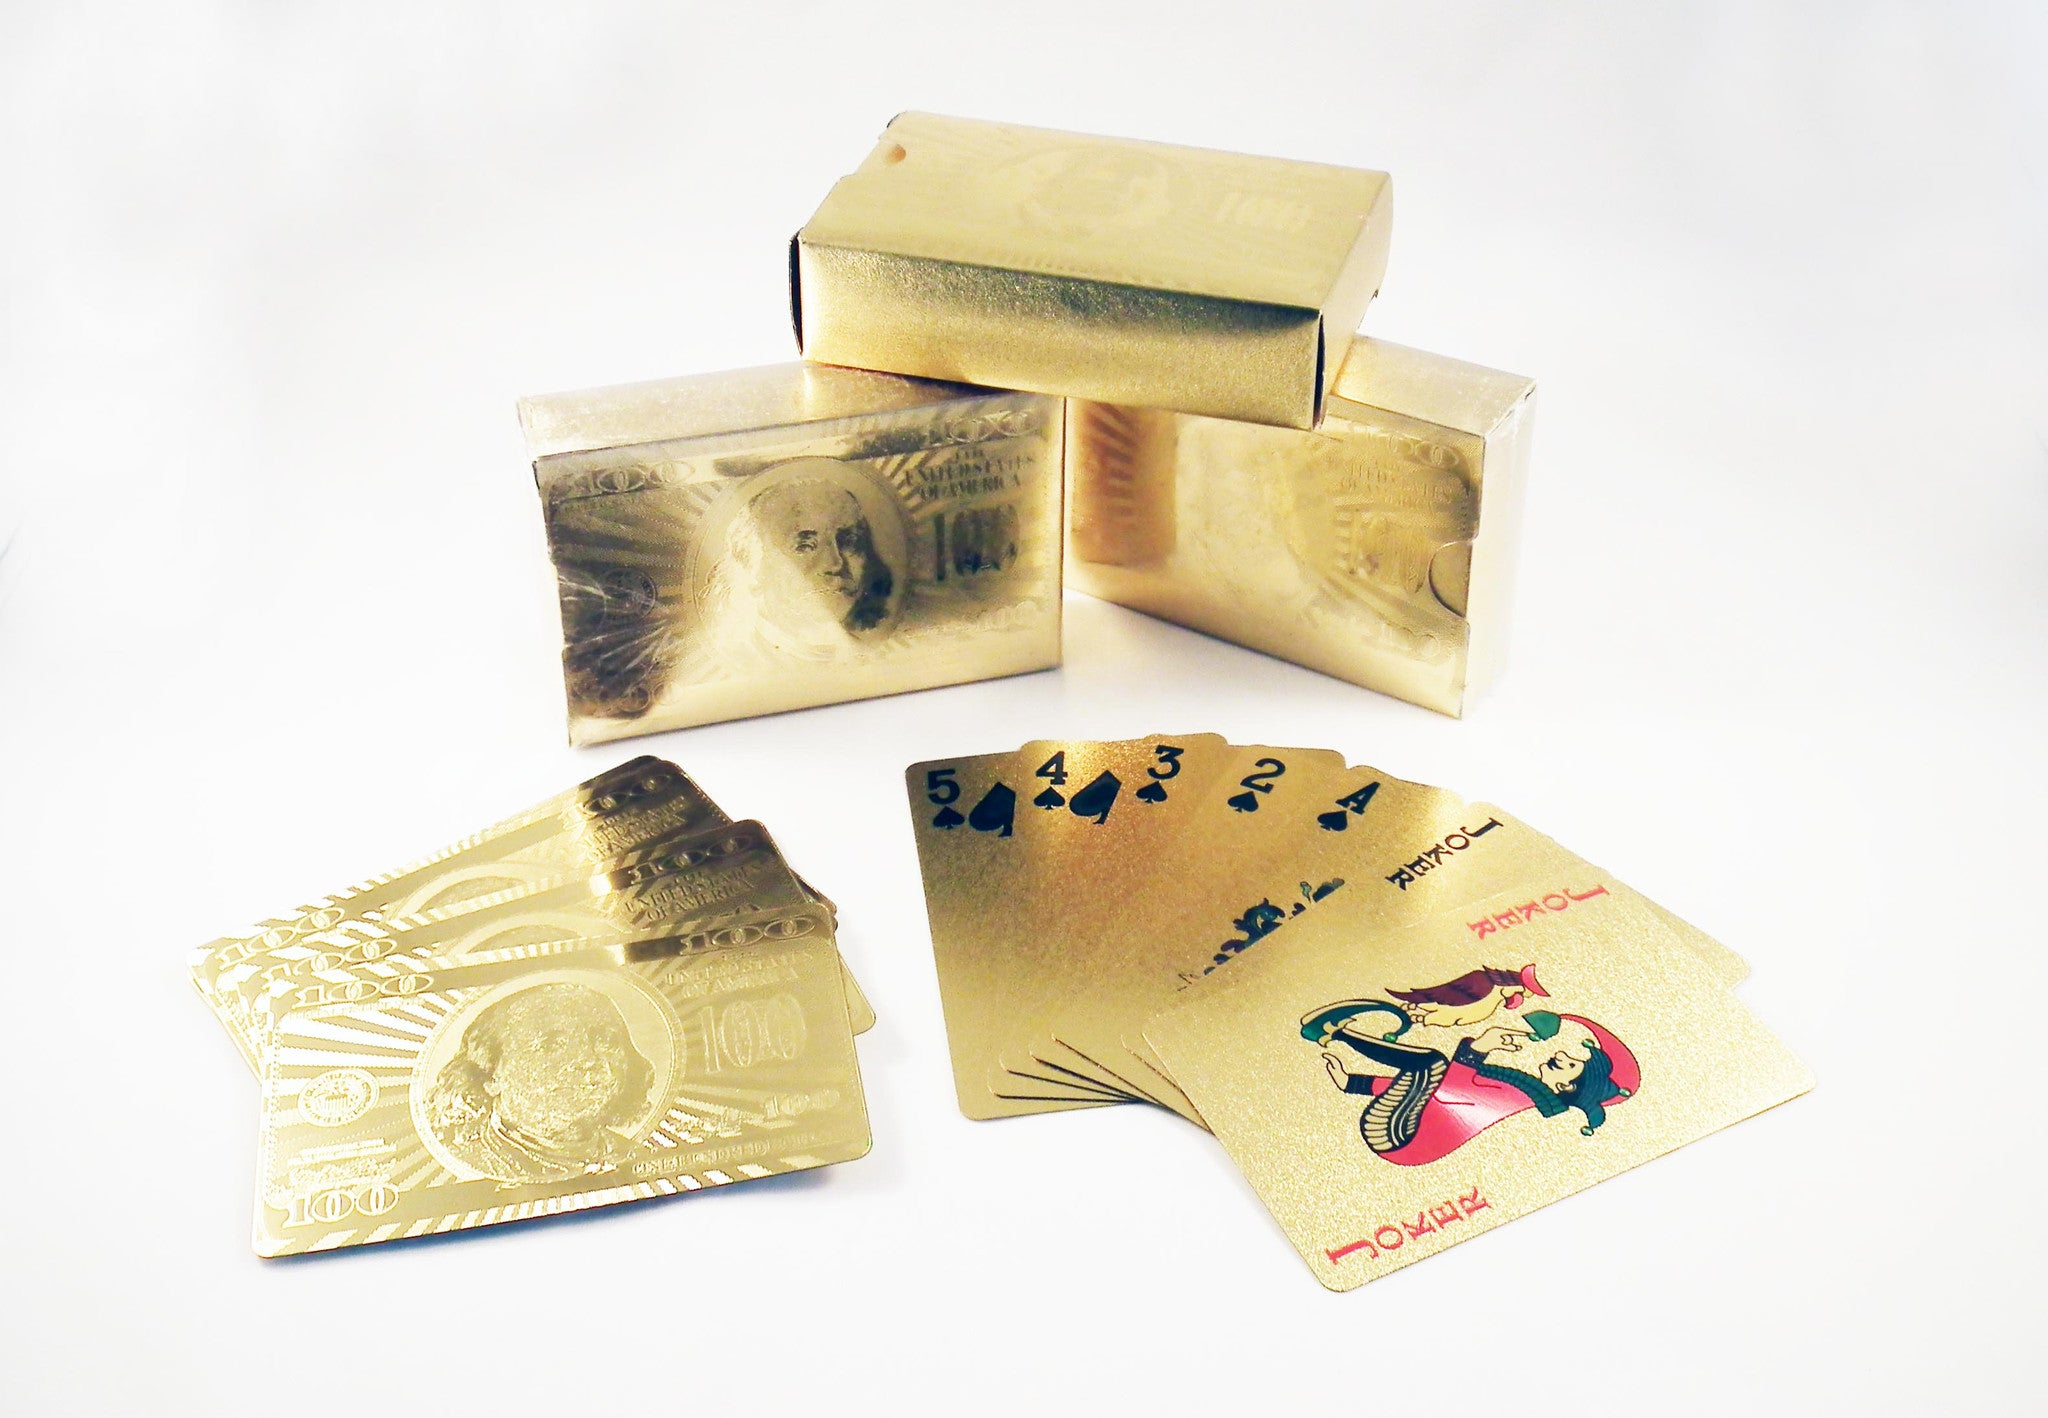 REF29G - Cartes à Jouer en Or / Gold Playing Cards - No Mercy Making